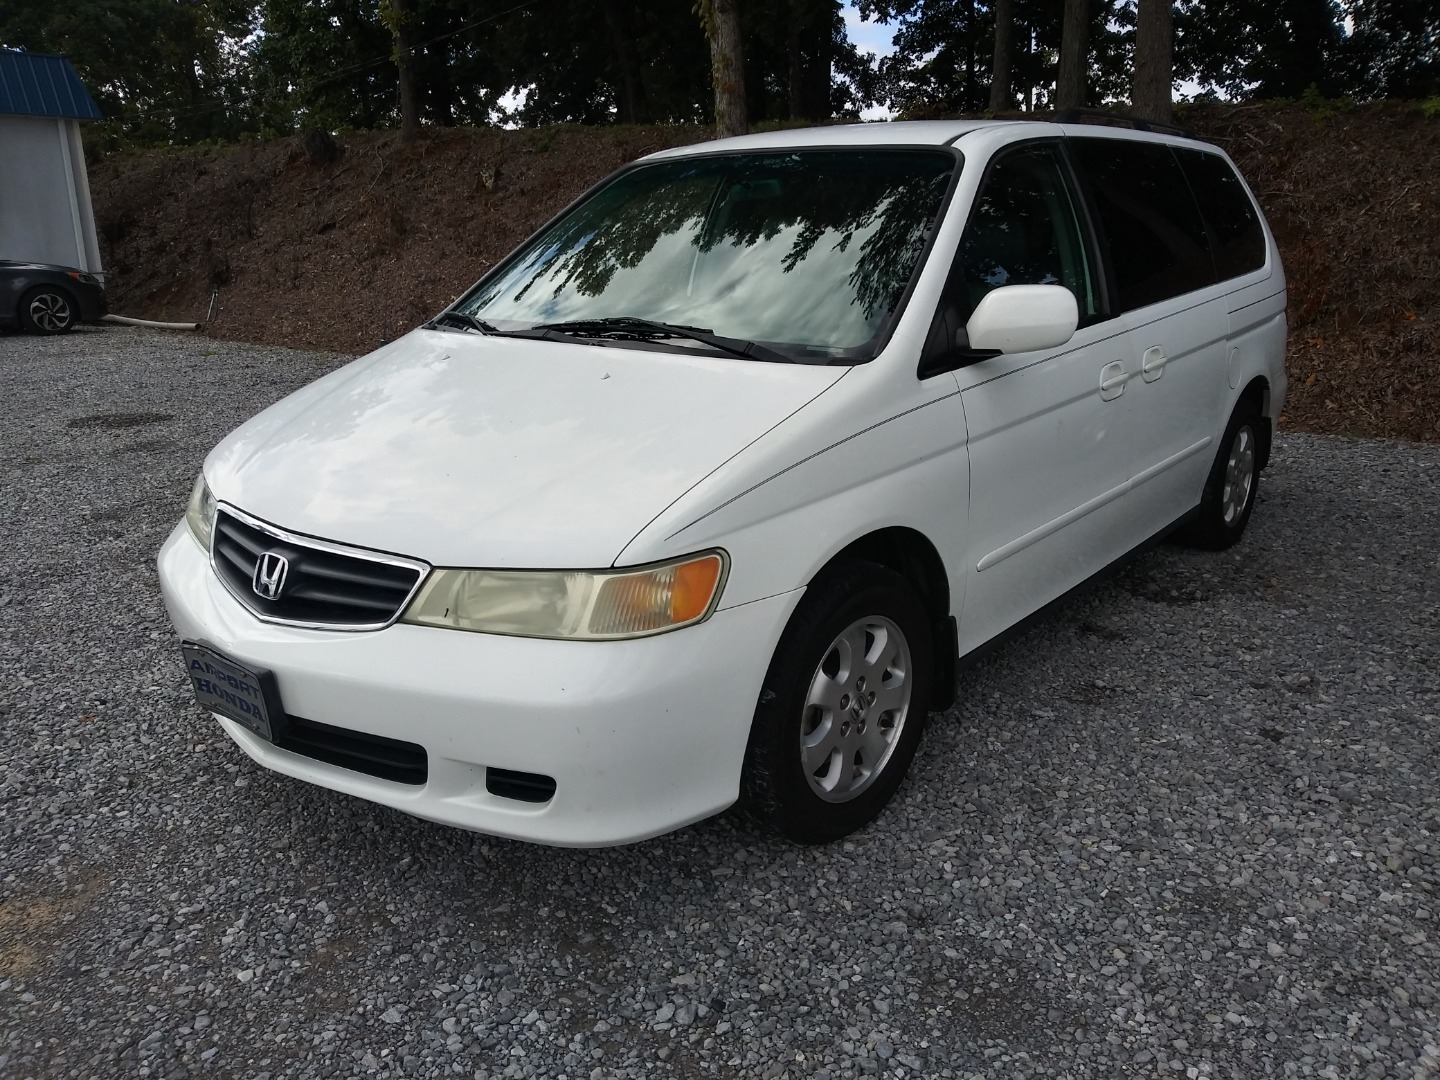 2004 honda odyssey 5dr ex l res w dvd leather airport auto sales dealership in louisville 2004 honda odyssey 5dr ex l res w dvd